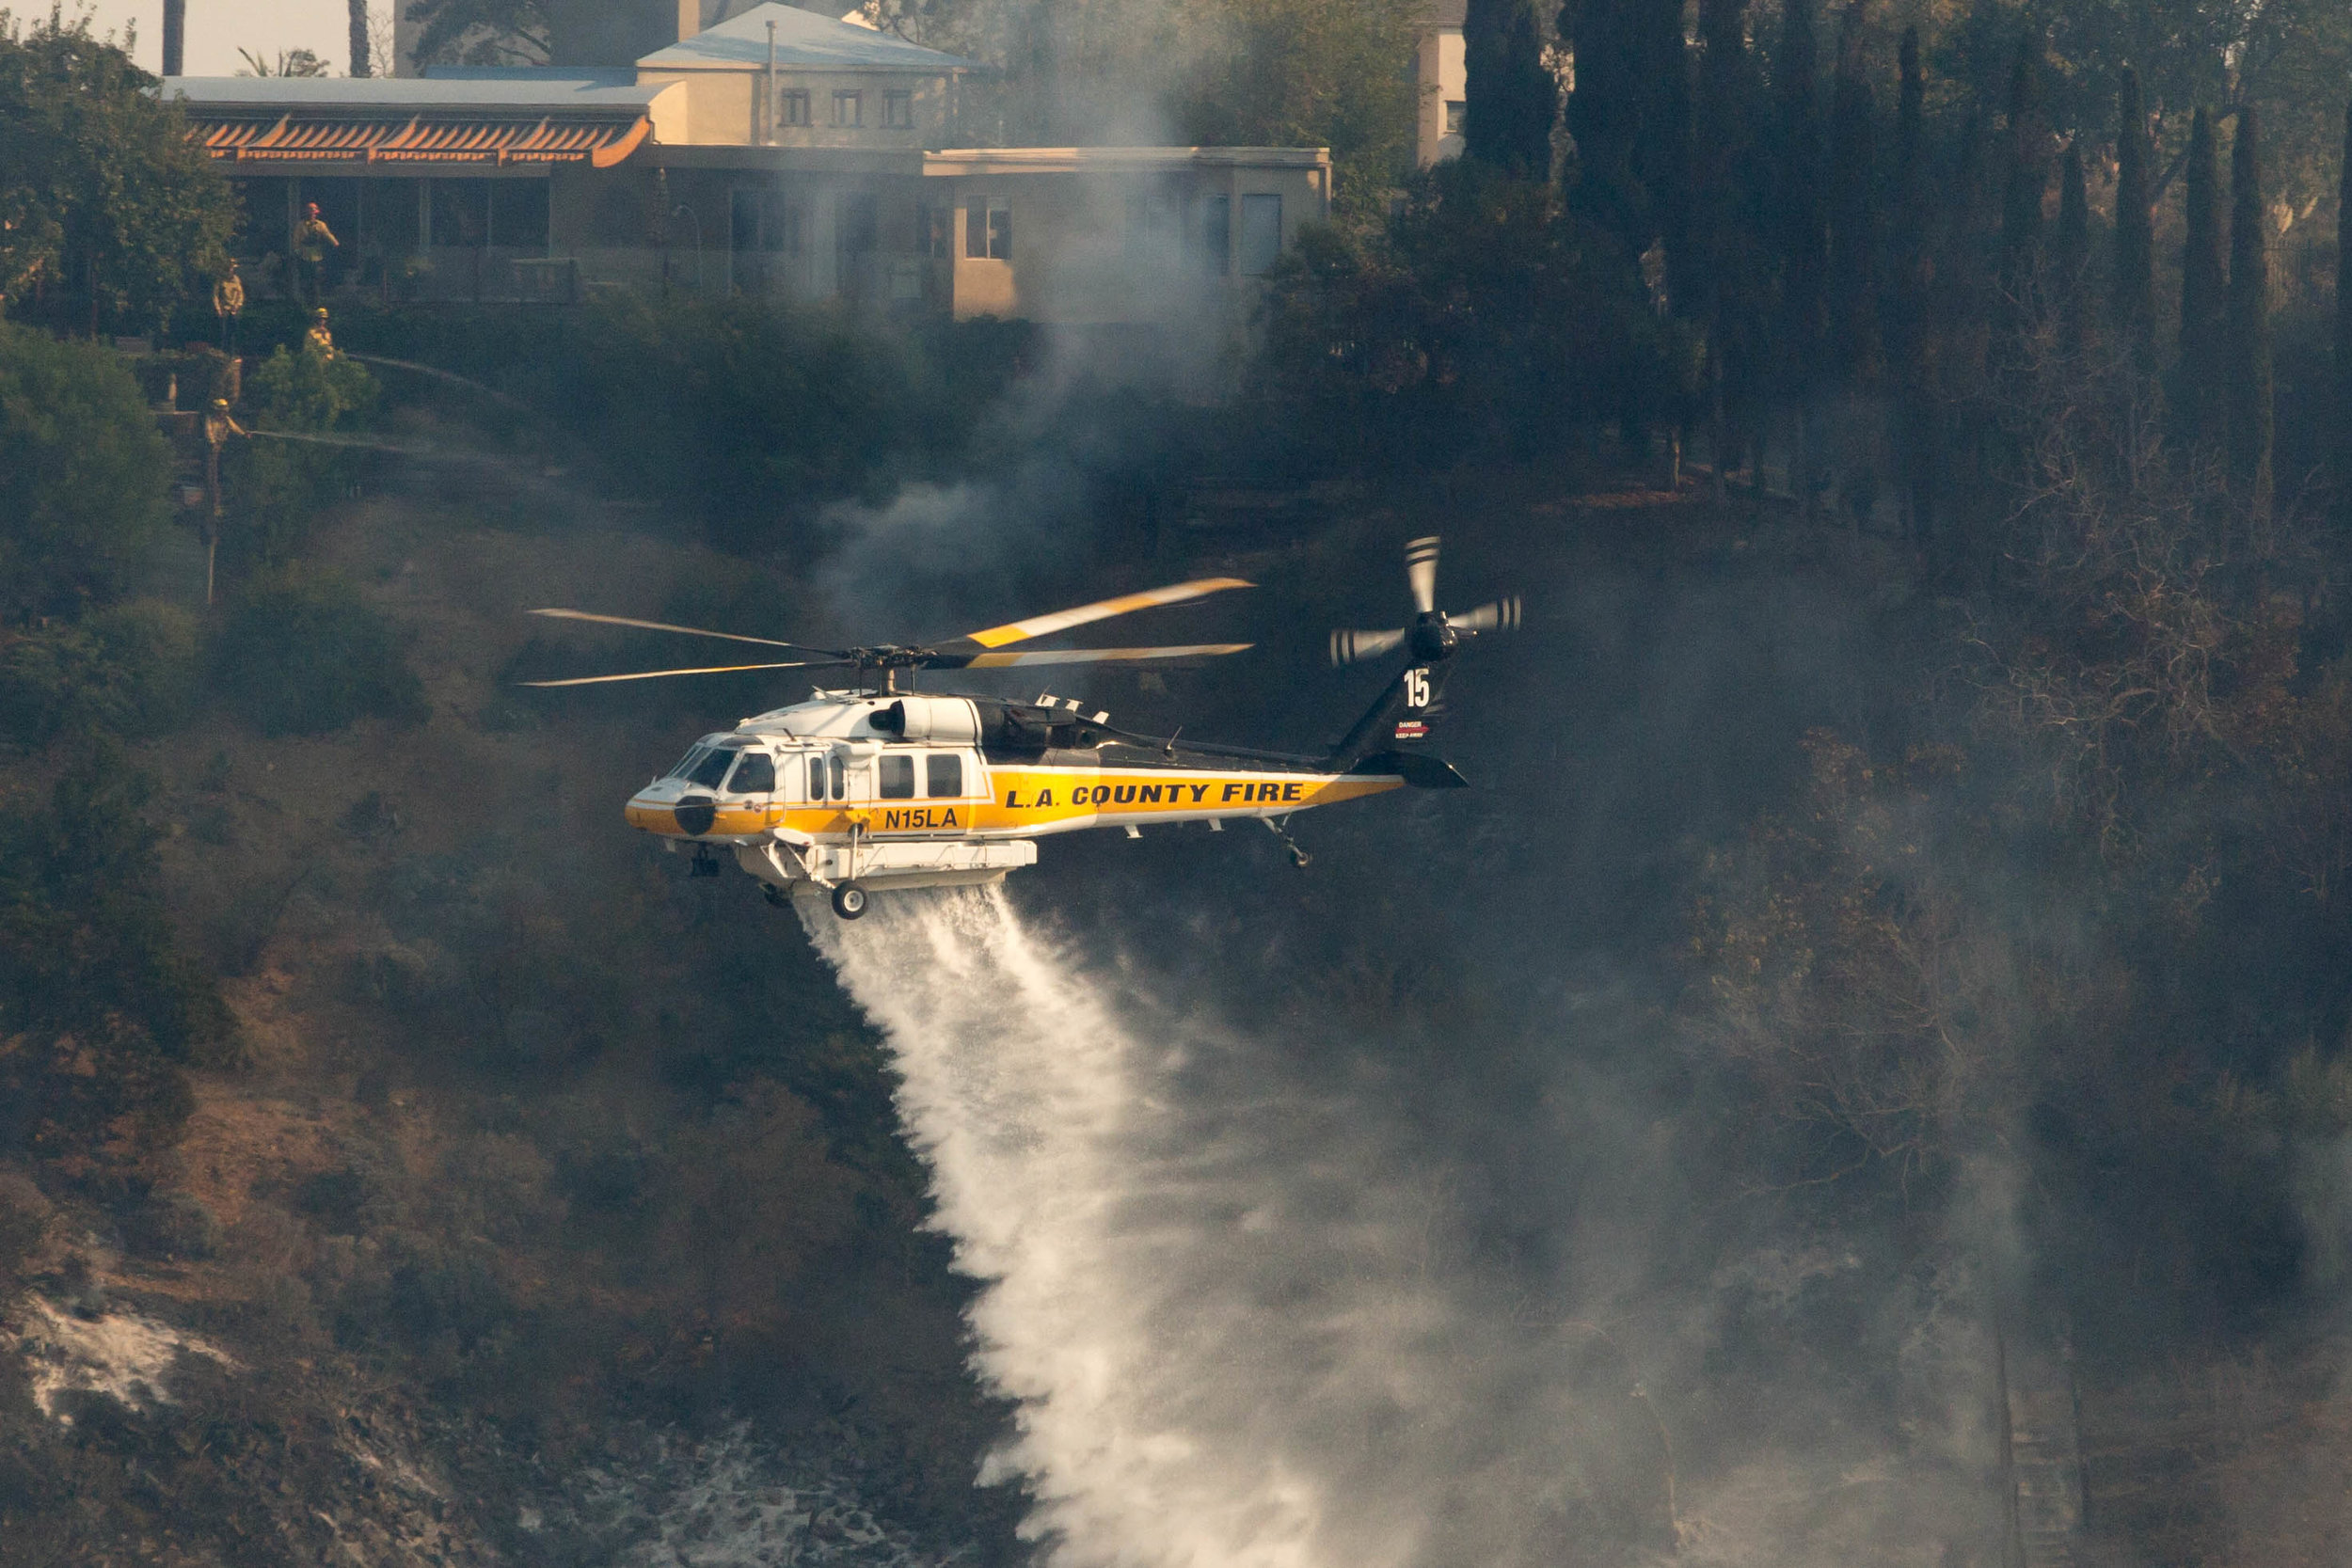 A Los Angeles County Fire helicopter makes a water drop on a vineyard during the Skirball Fire as firefighters on the ground work to keep the fire away on Wednesday, Dec.6, 2017 in the Bel-Air area of Los Angeles, Calif. (Jose Lopez)